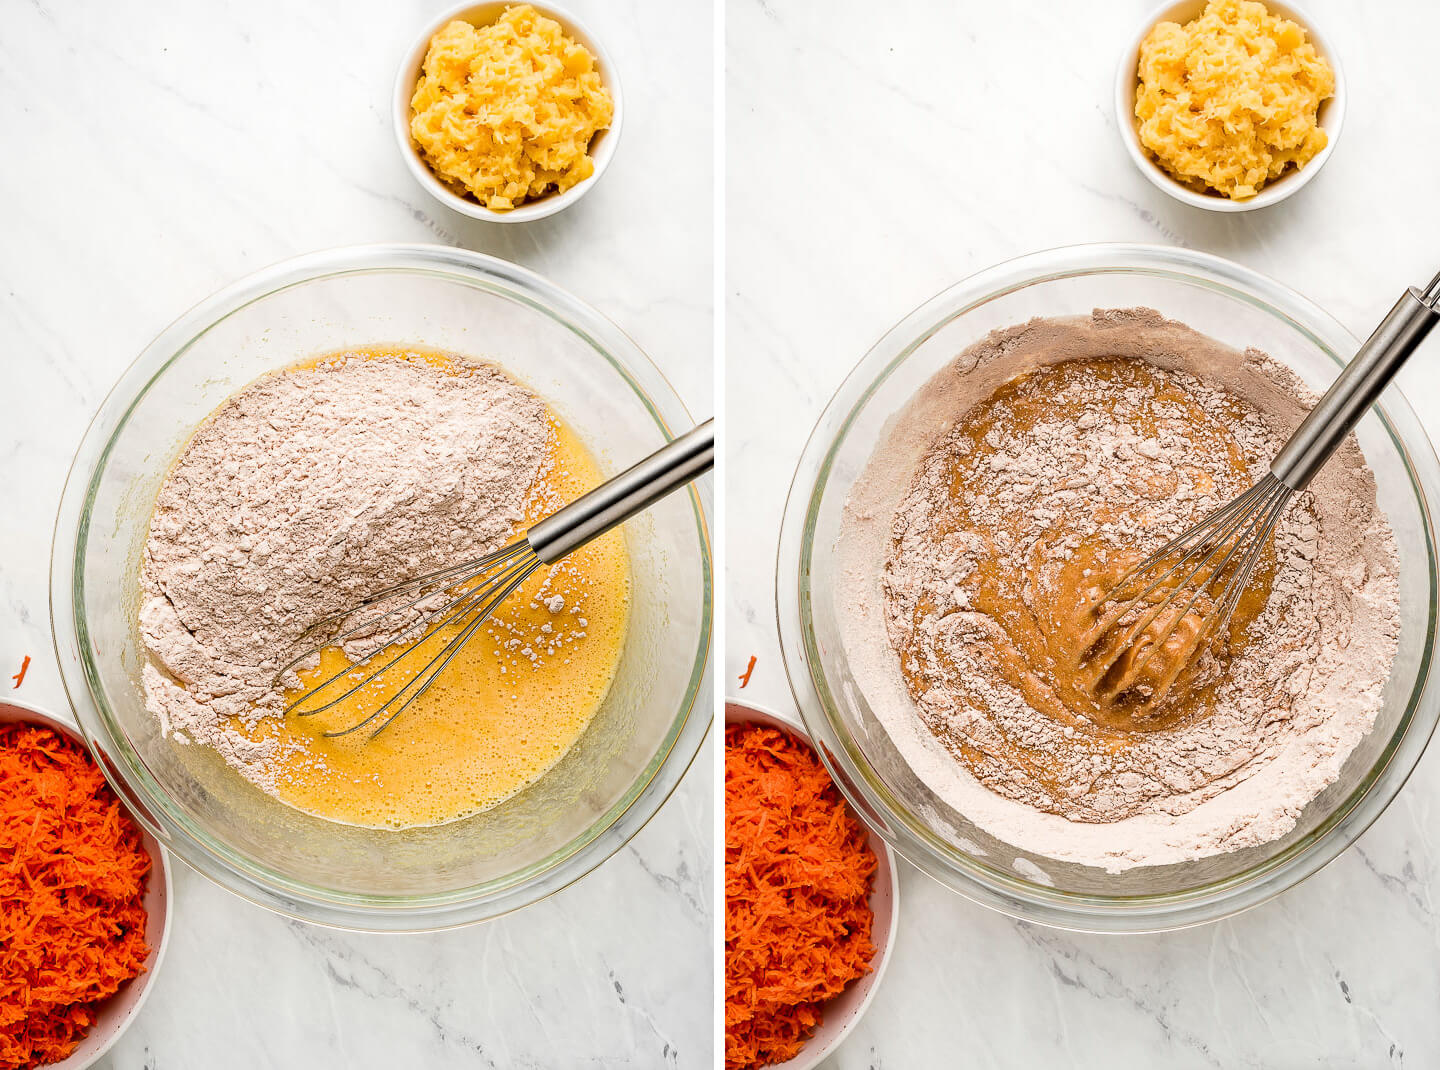 Diptych- A large mixing bowl of dry ingredients being added to liquid ingredients with pineapple and carrots to the side; batter being mixed together.